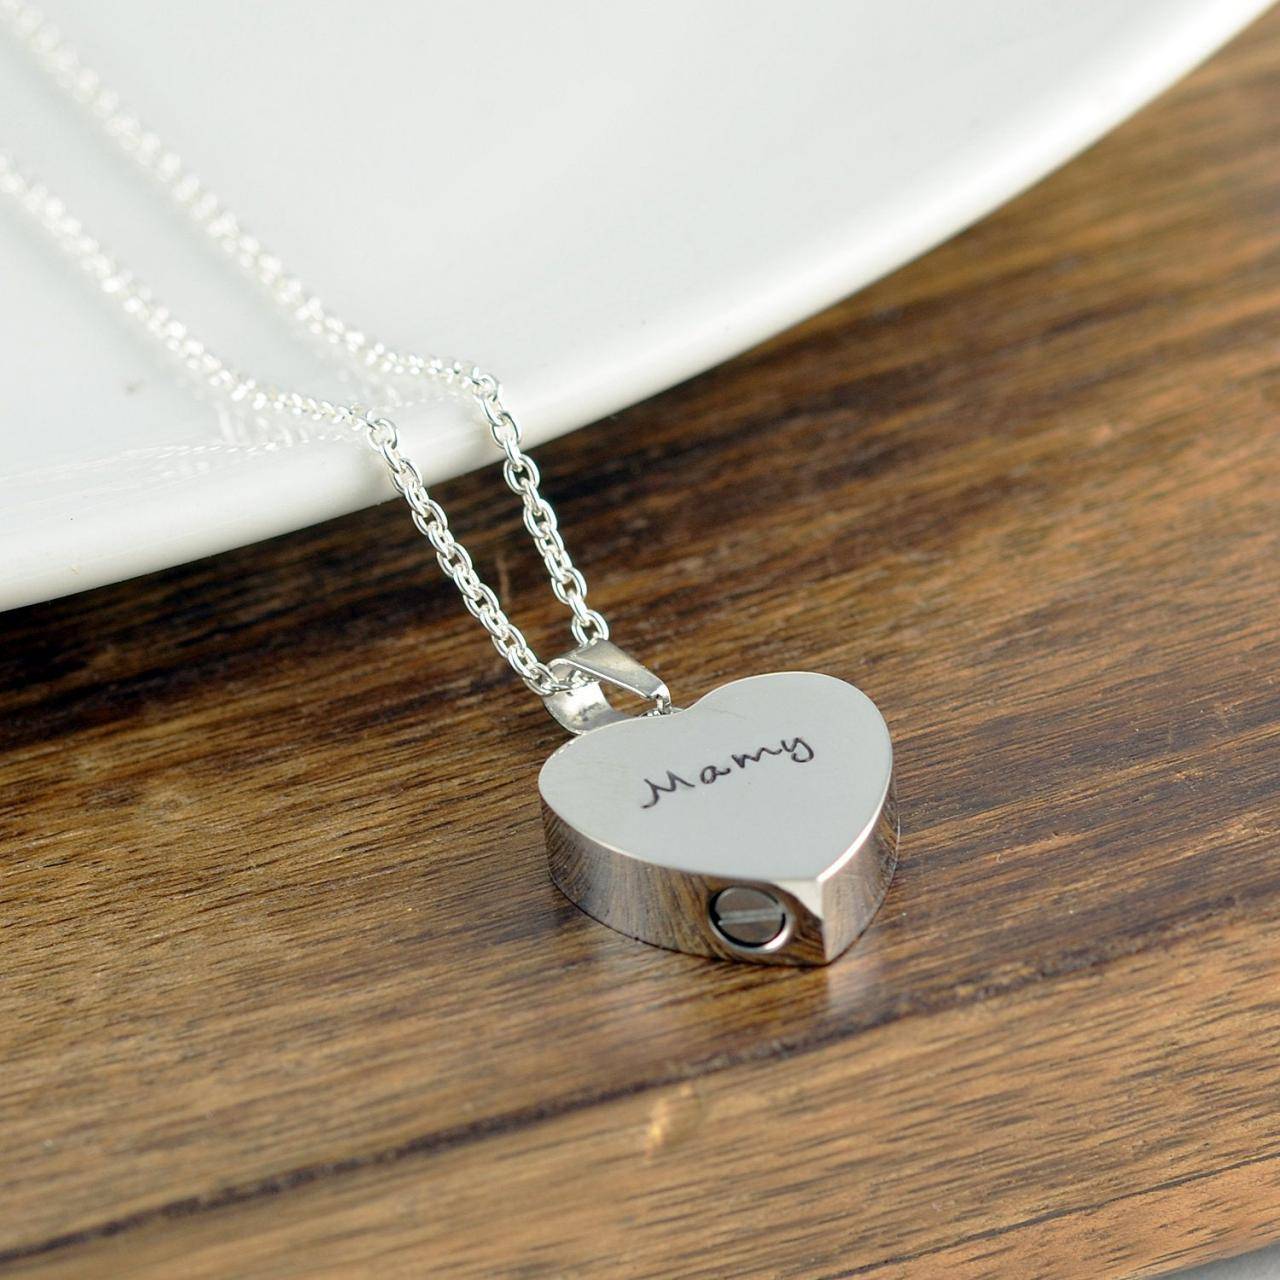 Personalized Cremation Jewelry Ash Jewelry Heart Cremation Pendant Urn Necklace For Ashes Silver On Luulla